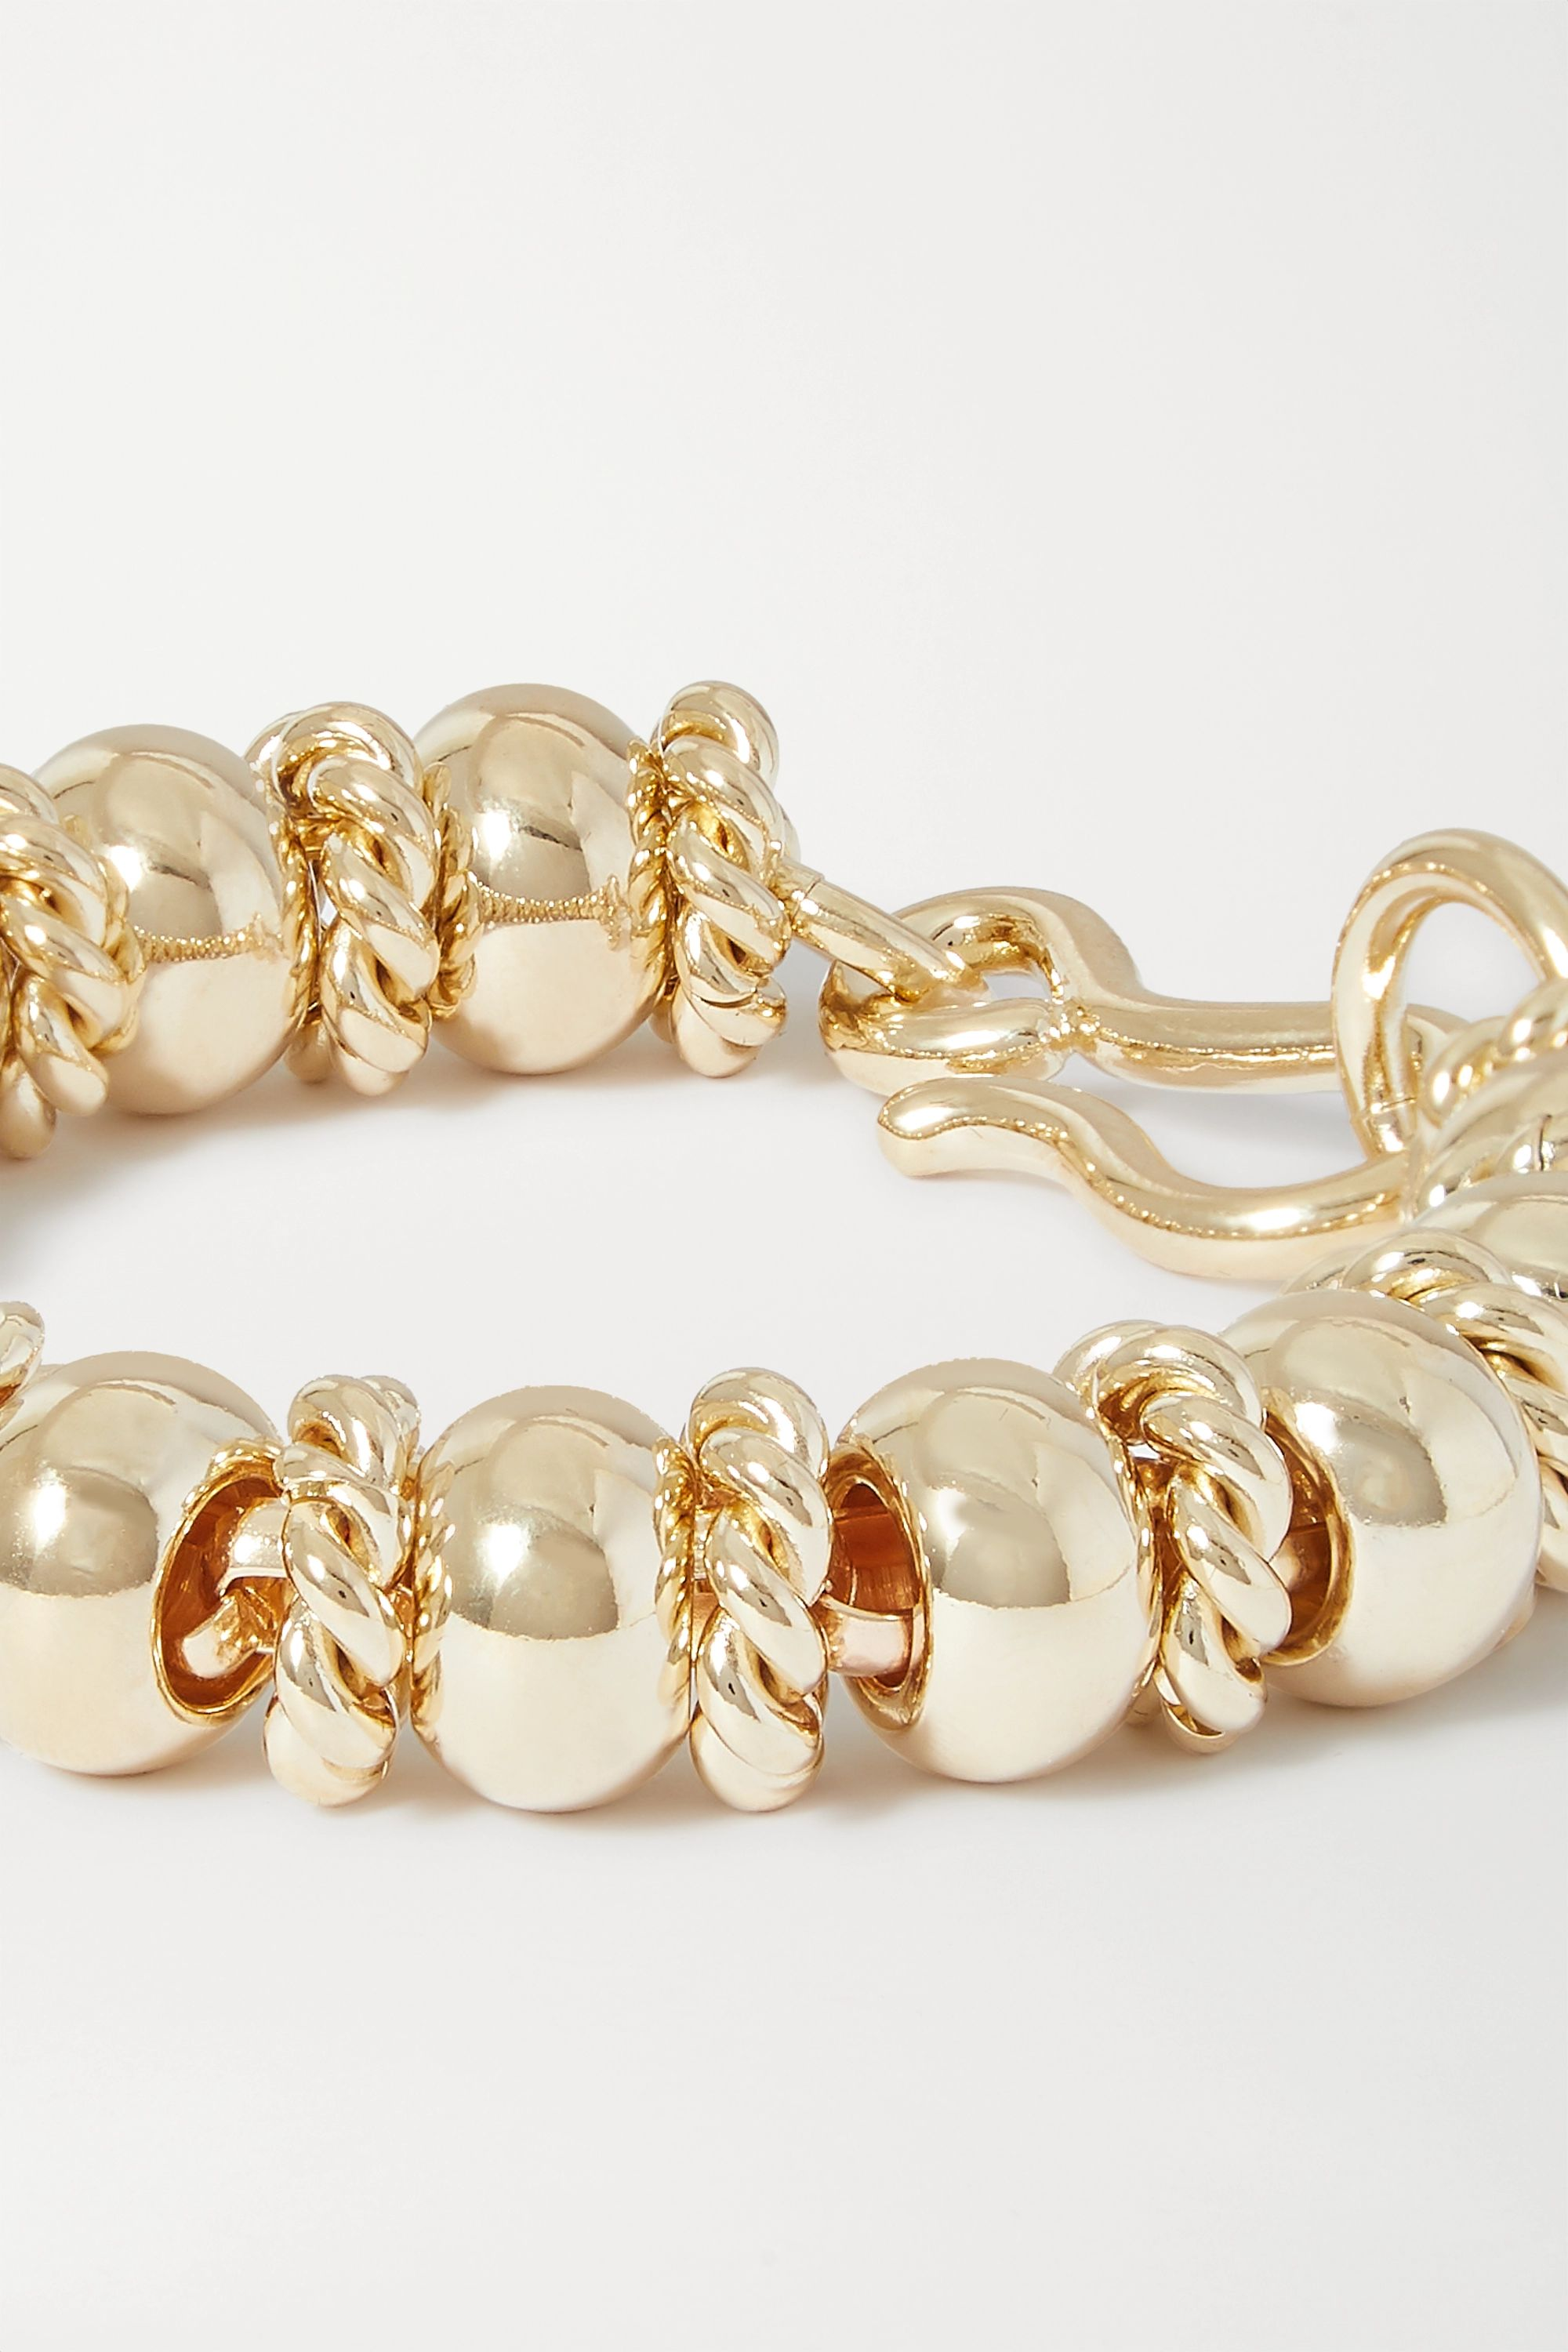 Laura Lombardi + NET SUSTAIN Serena gold-plated bracelet